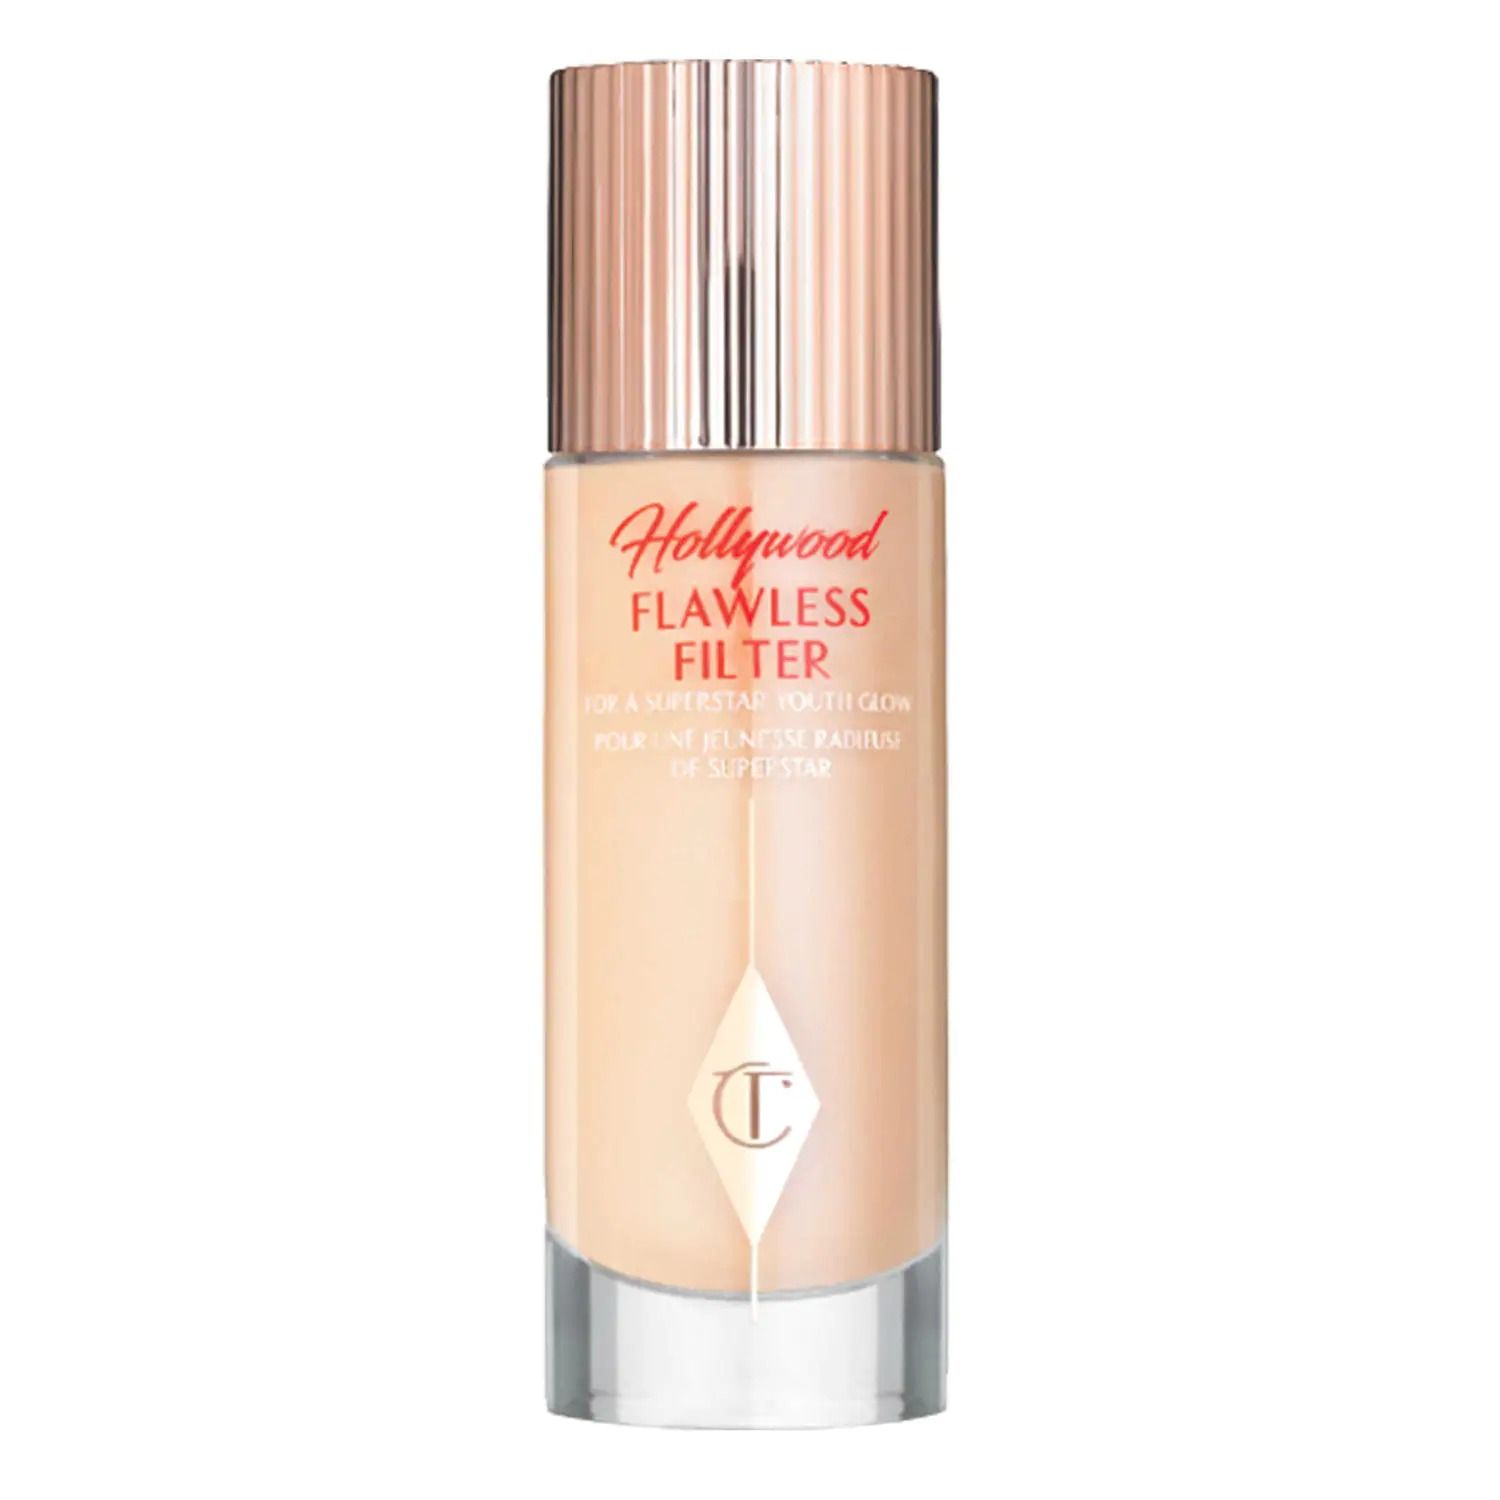 HOLLYWOOD FLAWLESS FILTER - CHARLOTTE TILBURY